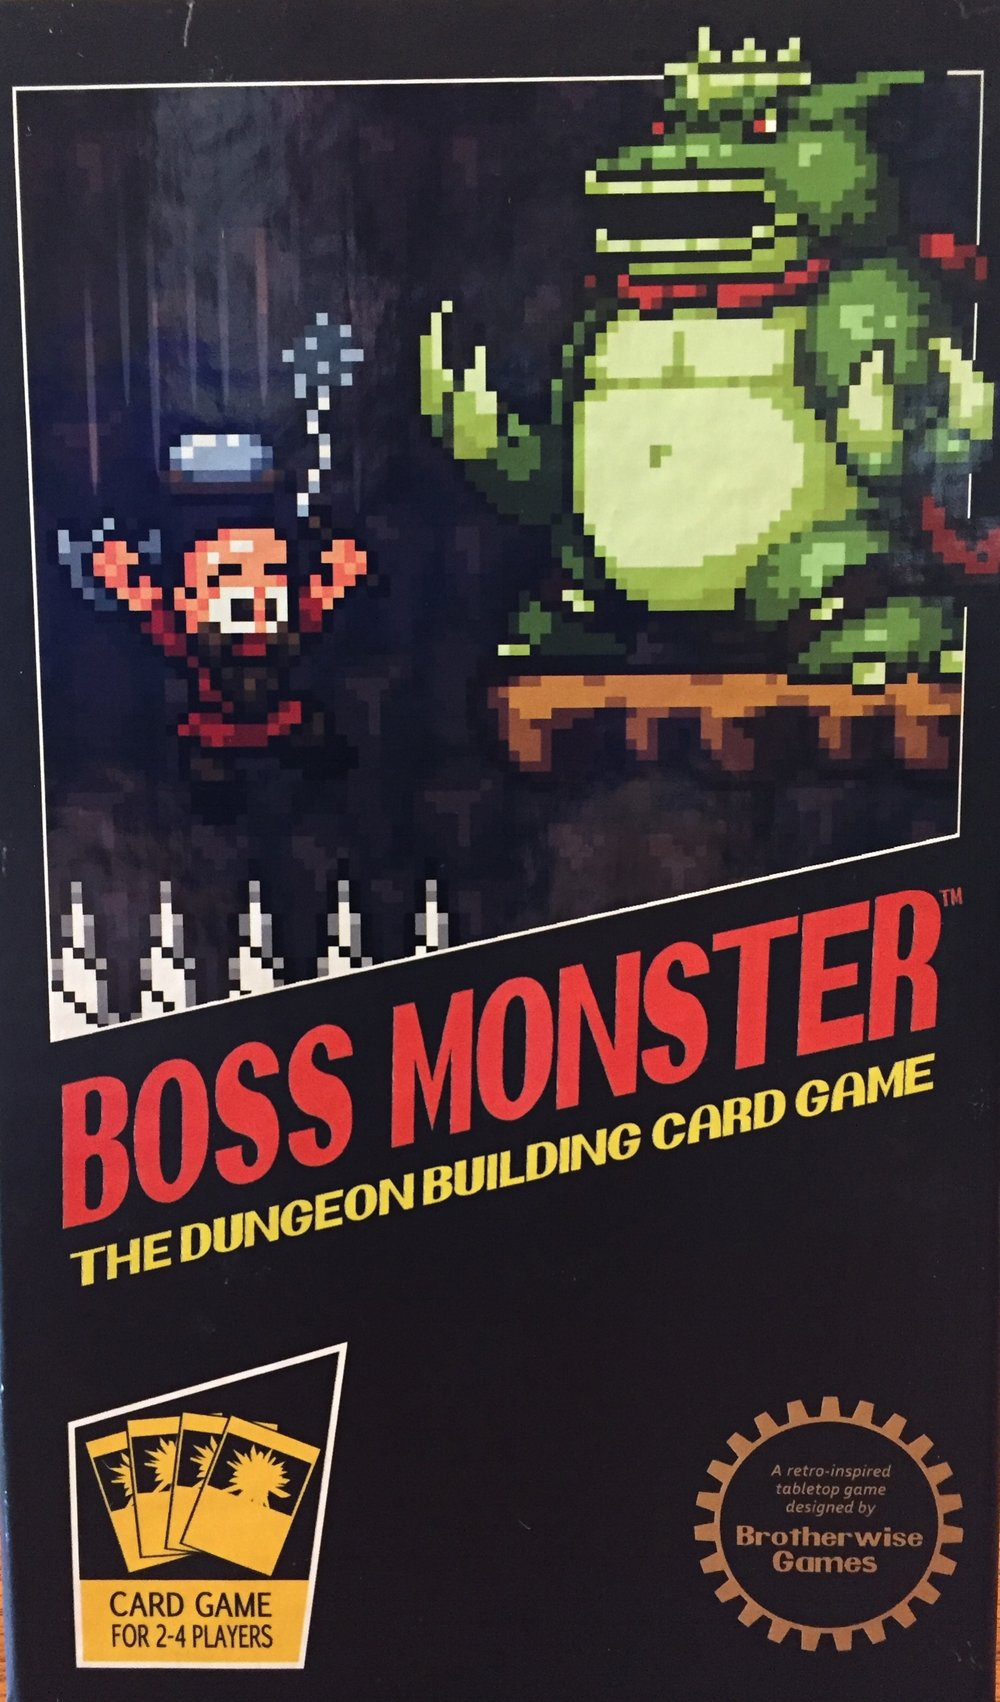 Boss Monster features fun box art clearly modeled after classic NES games, right down to the faux NES Seal of Approval in the bottom corner. Is this a board game or a video game?